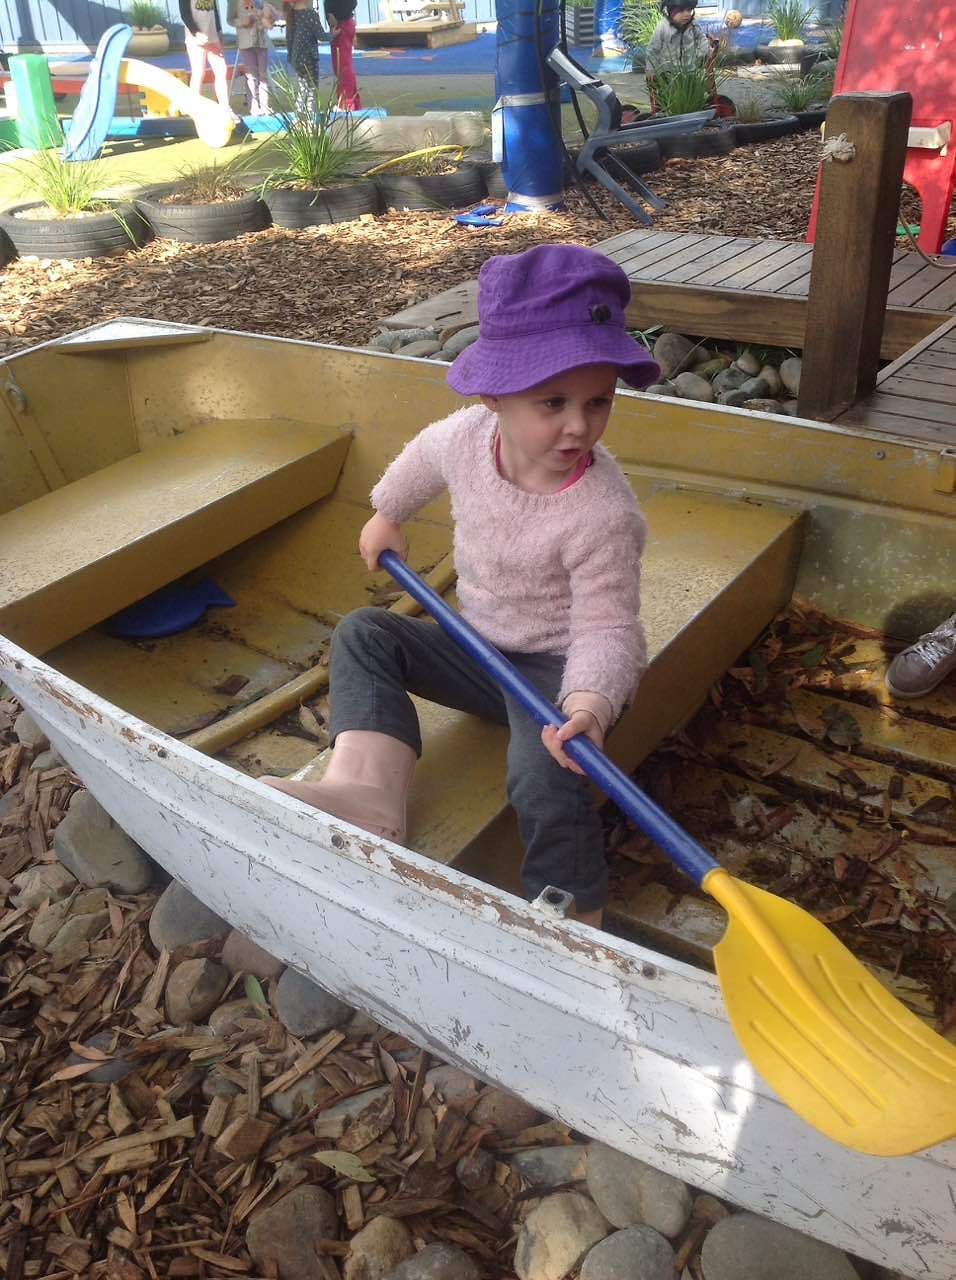 Charlette travelled far and wide in the boat, rowing her way through the deep seas.